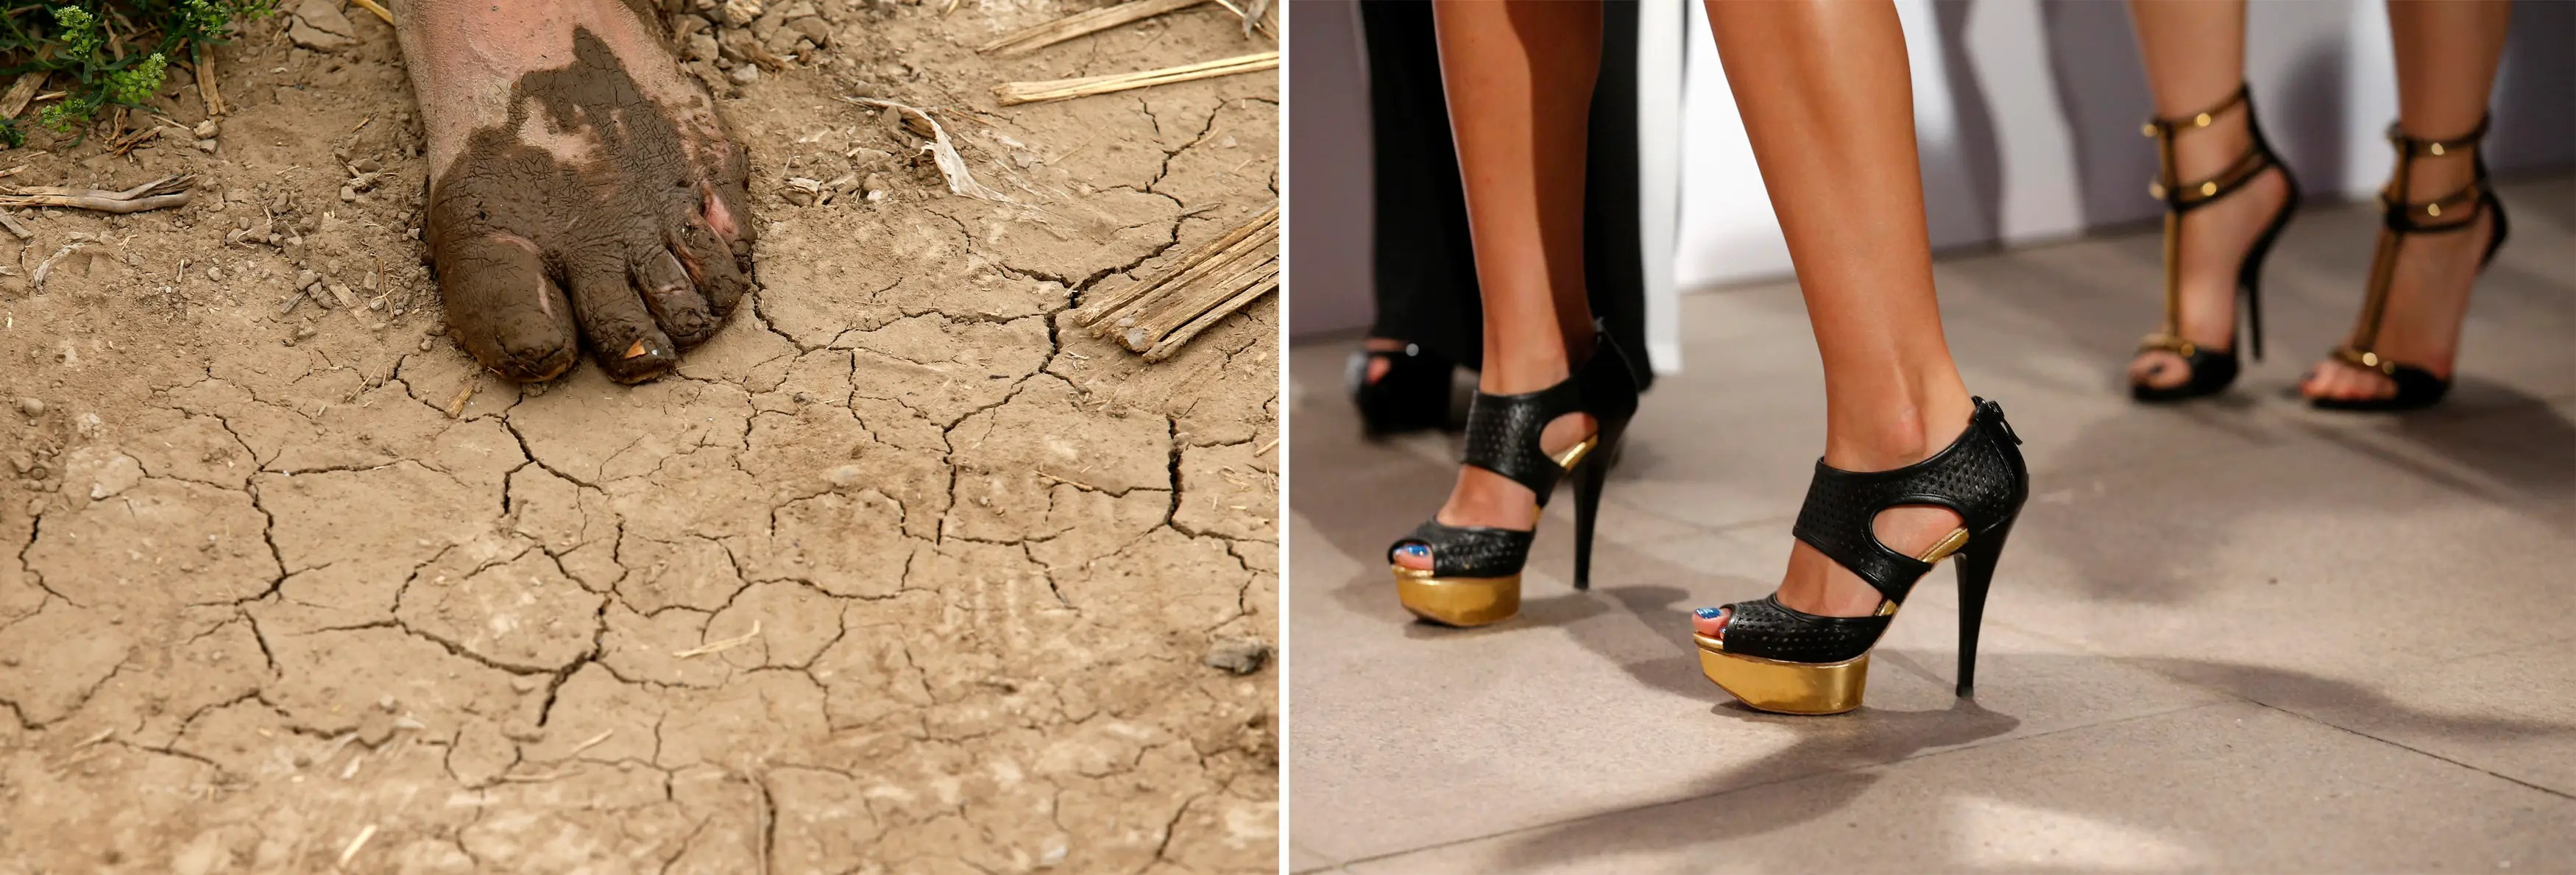 (L) A female farmer's bare foot covered in mud about 50 miles from Beijing and (R) women wearing high heels during a photo session in Beijing.